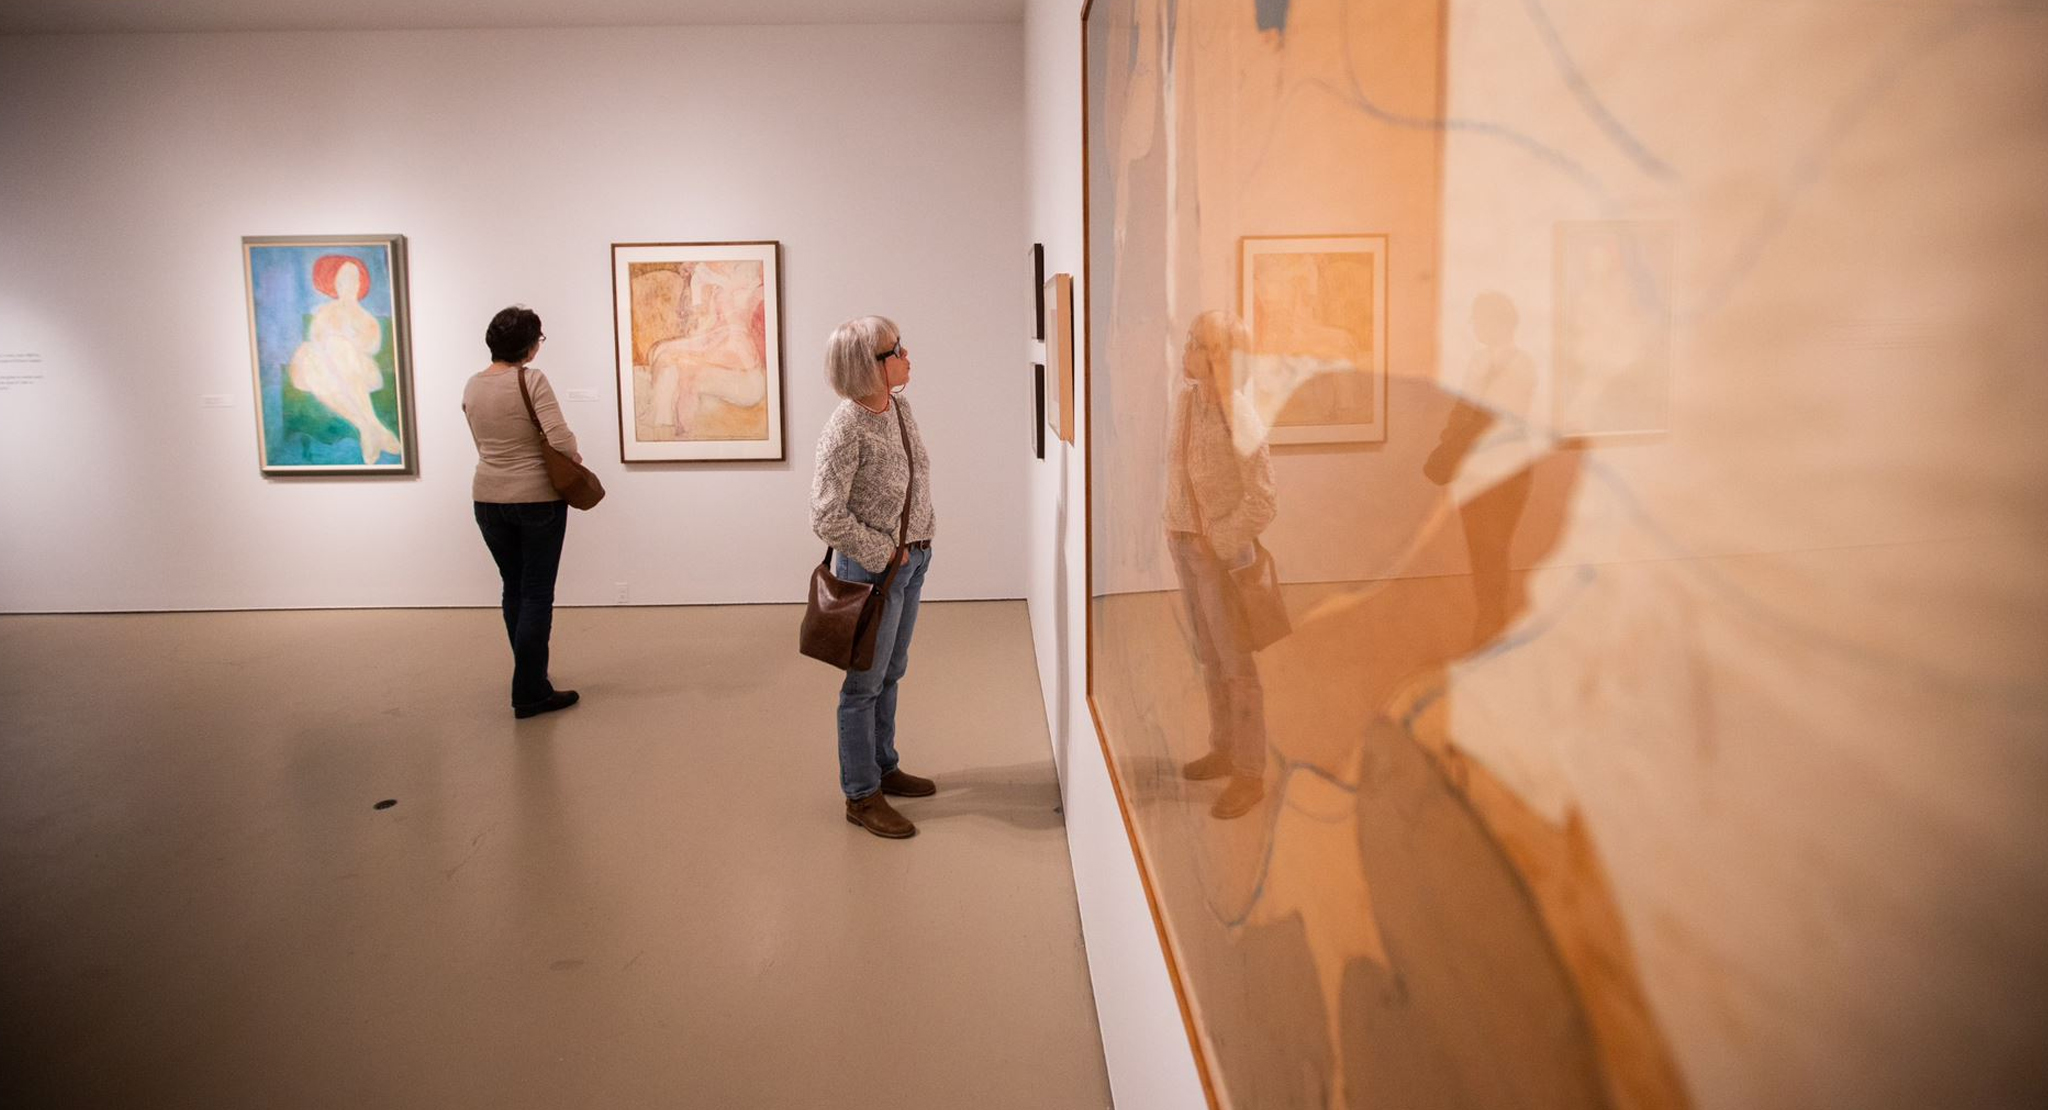 Tour the Gallery Virtually!